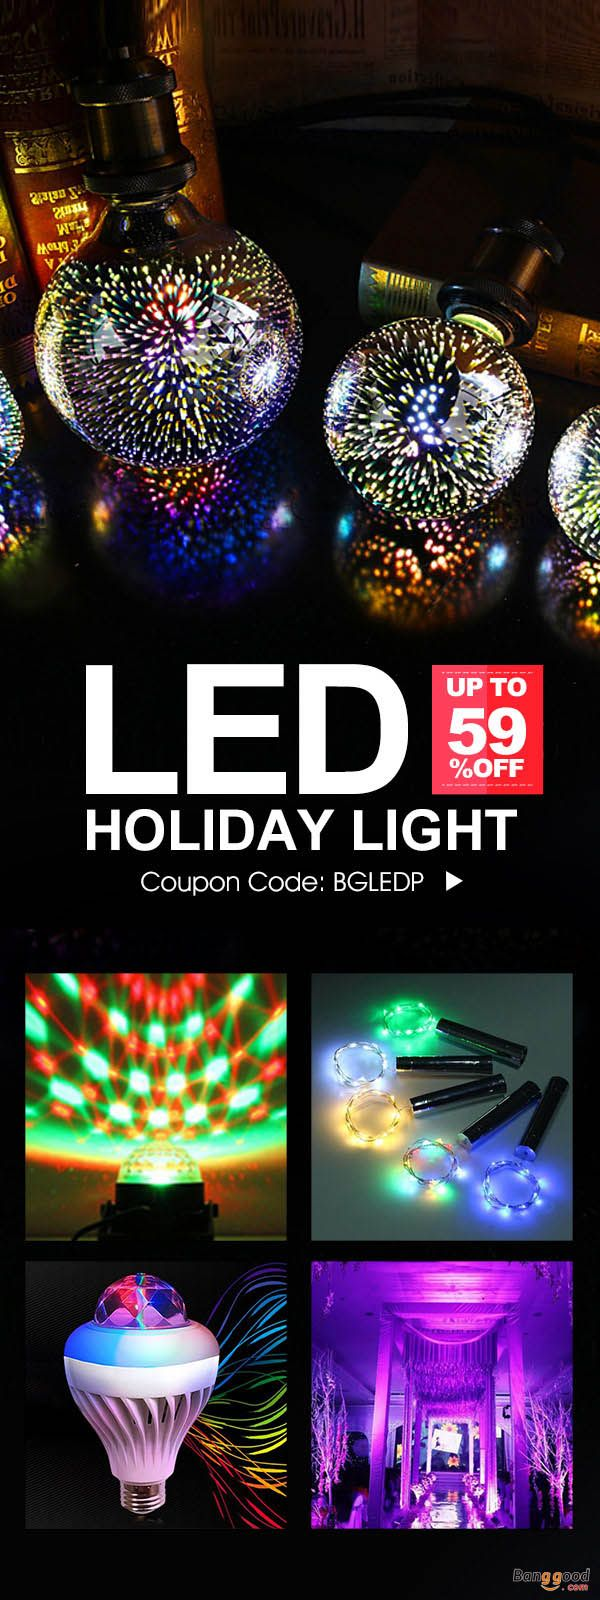 LED Holiday Light Promotion! Start From $2.49, up to 59% OFF. Directly fall, New arrival, Stage Lights, Holiday Lights, etc. The coupon code can give you a discount. Shop with fun!